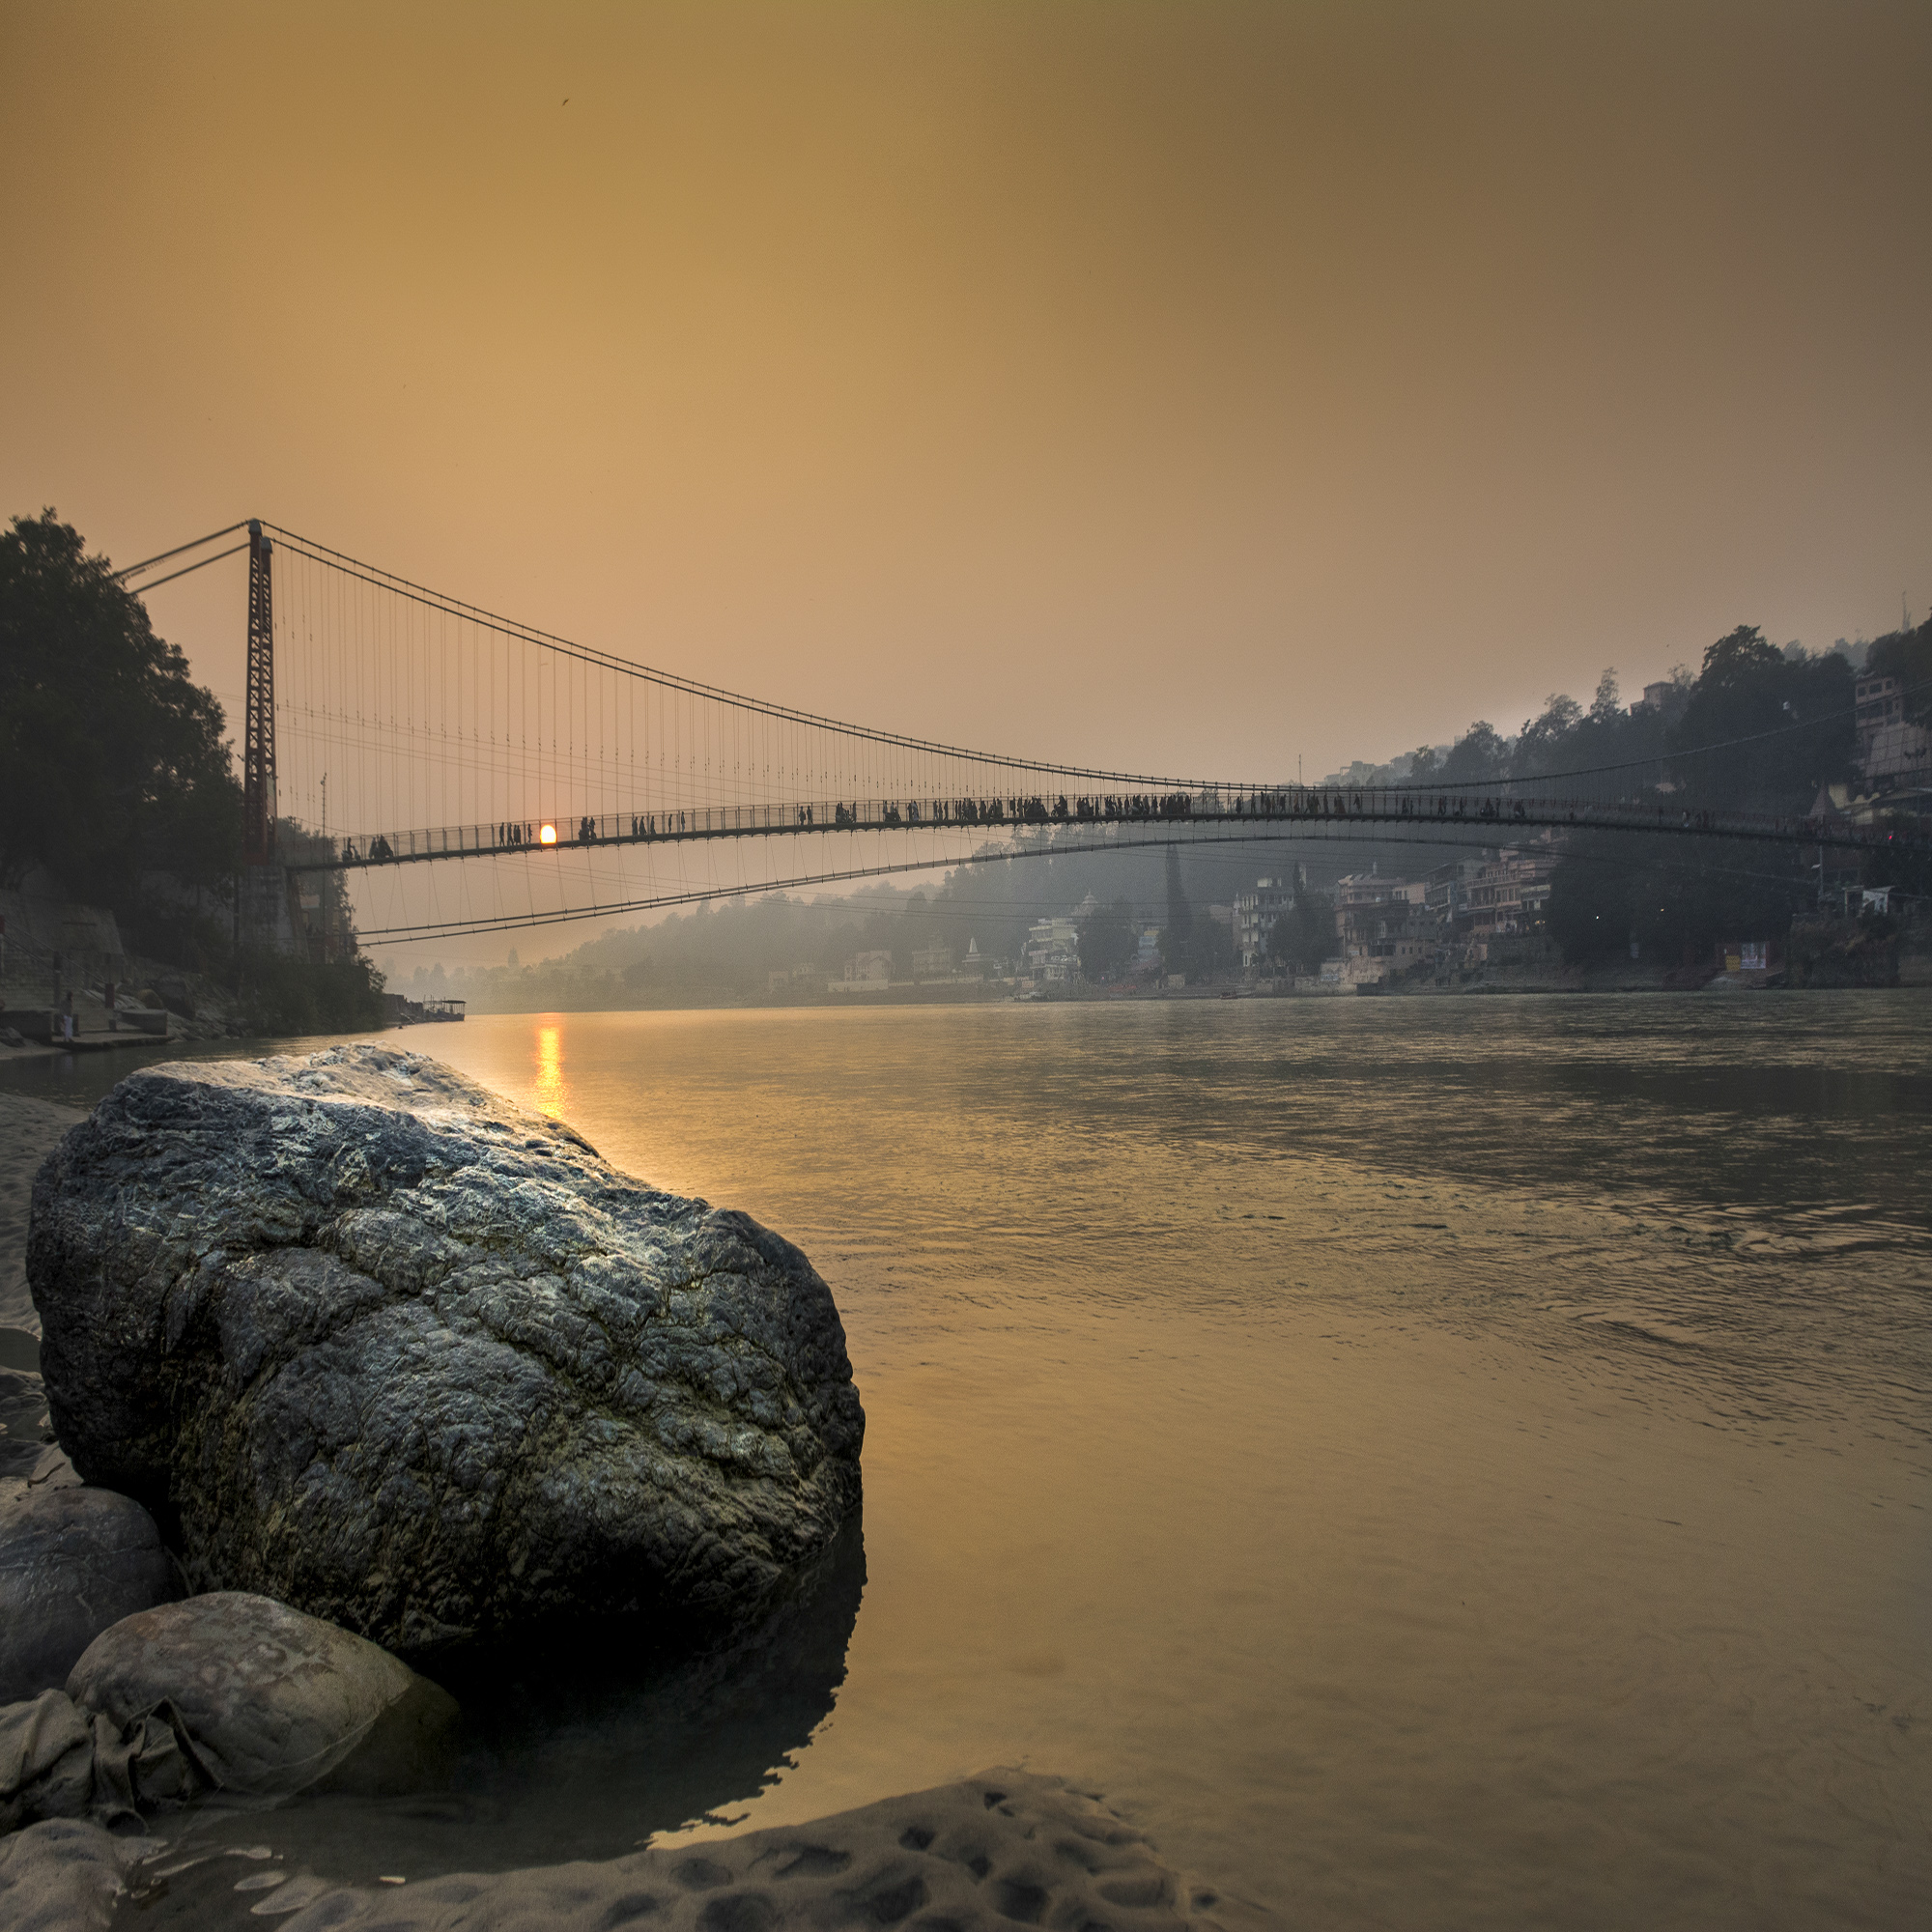 Rishikesh is not only the yoga capital of the world but there is much more one looks for.. it has serenity, beautiful bridges, beeches,people and yes the holy Ganga. i took this image near Ramjhula.